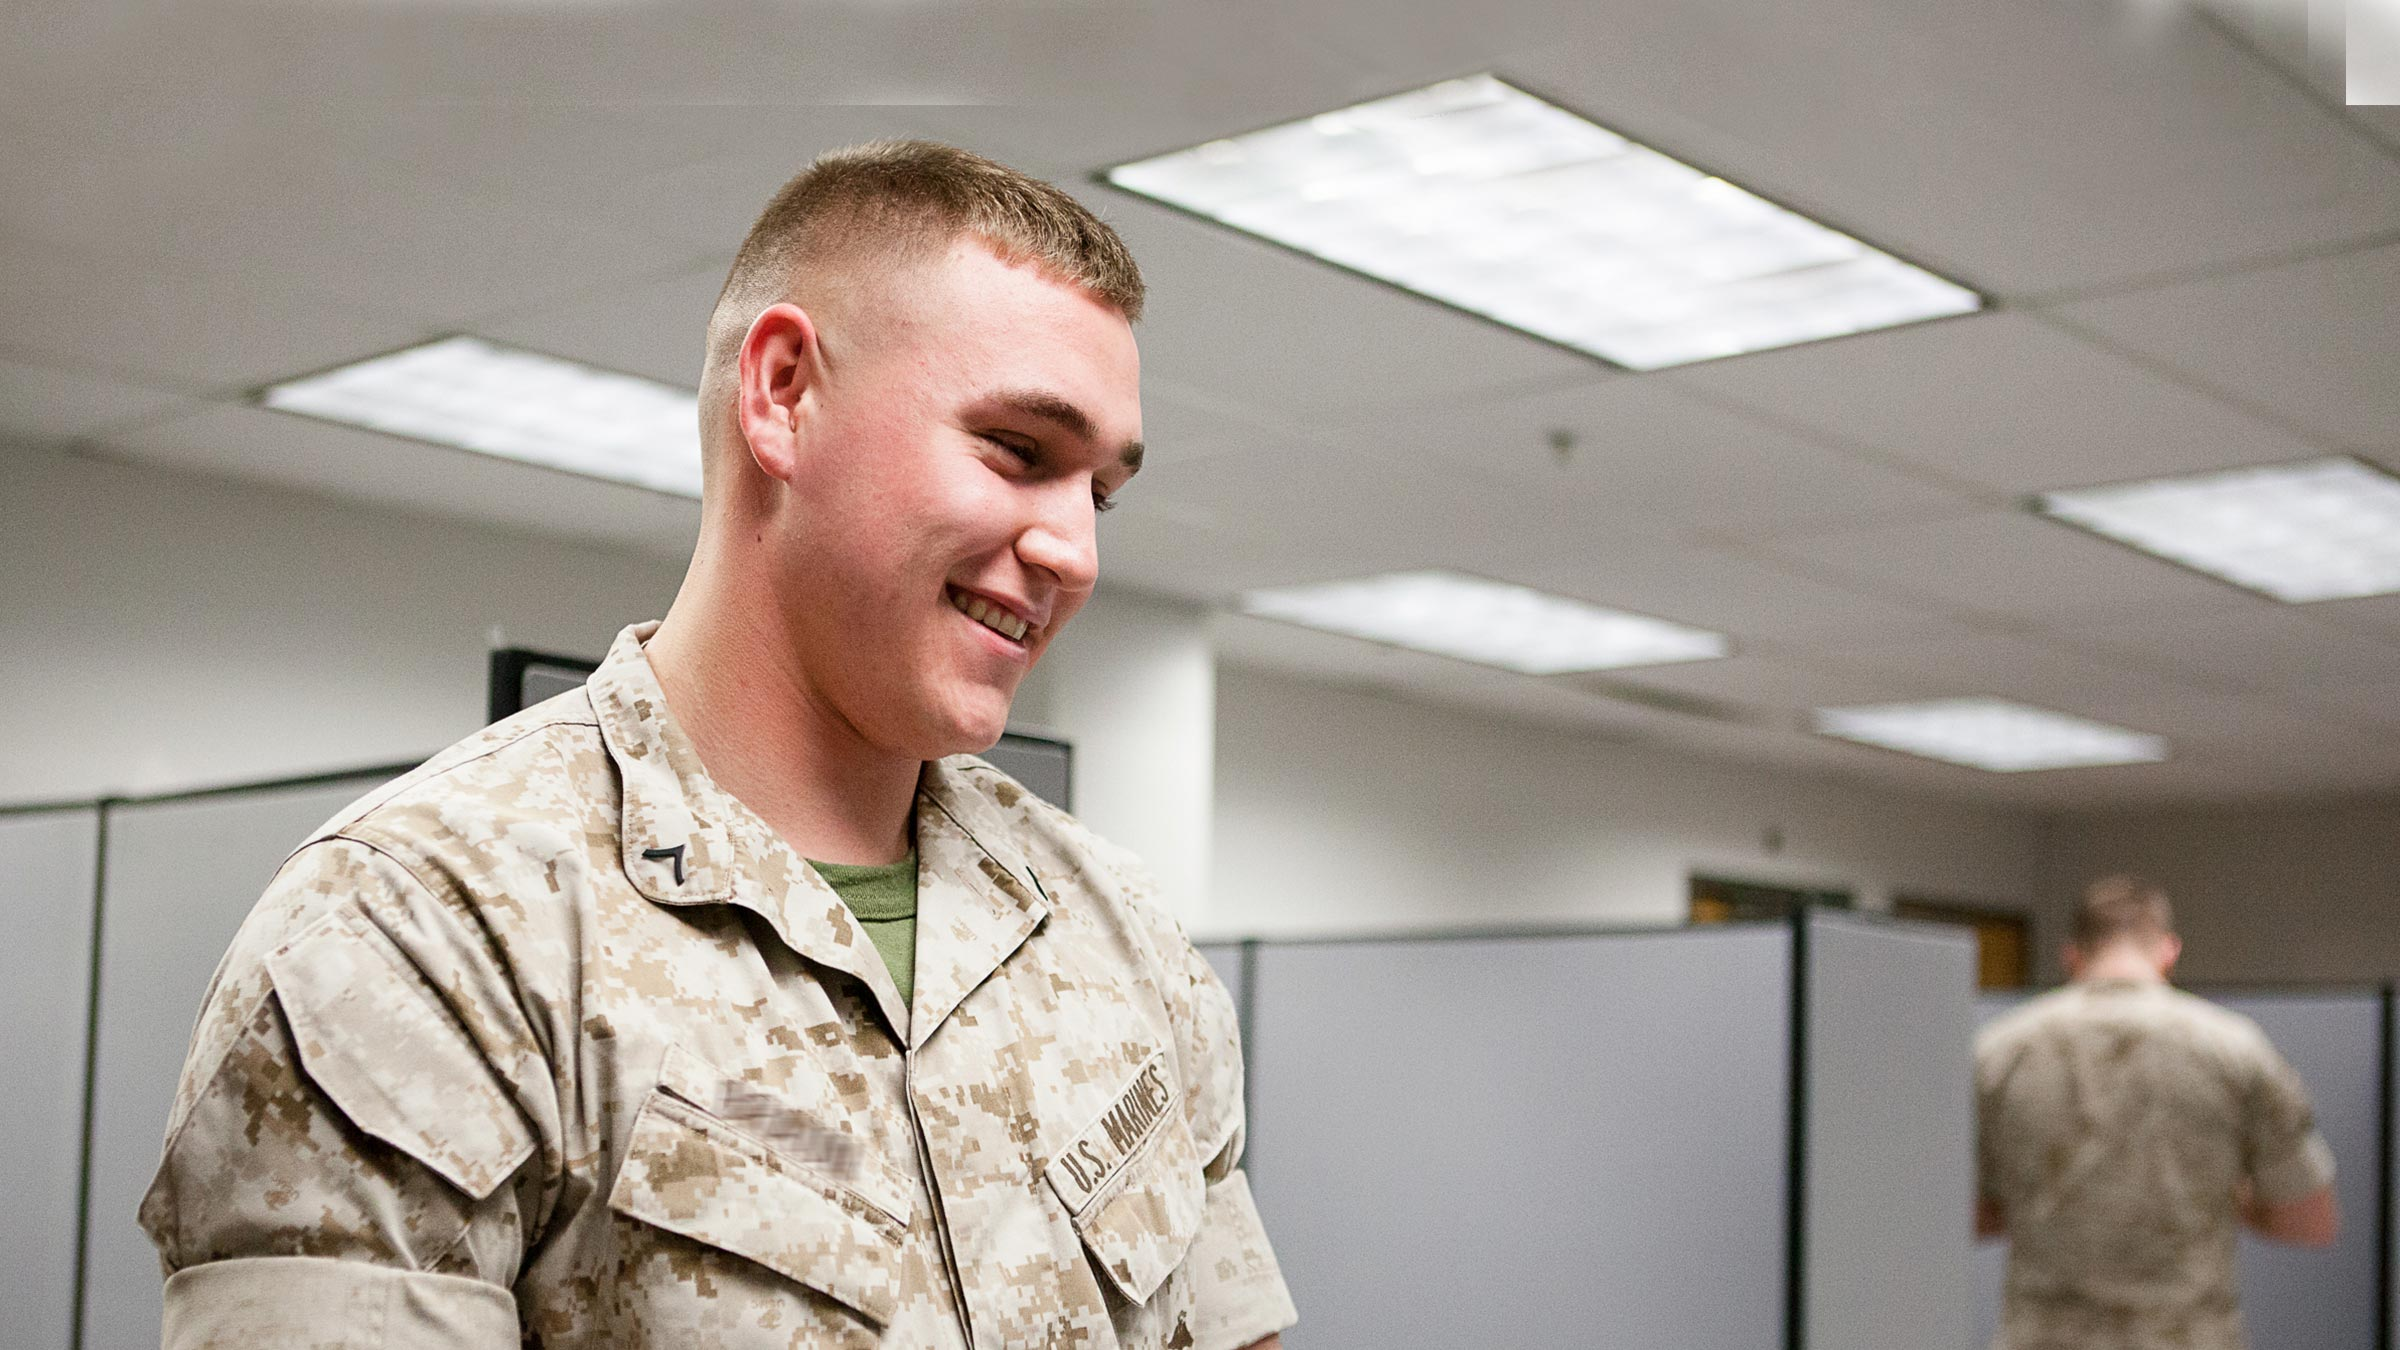 A marine talks with staff at a tax assistance center.